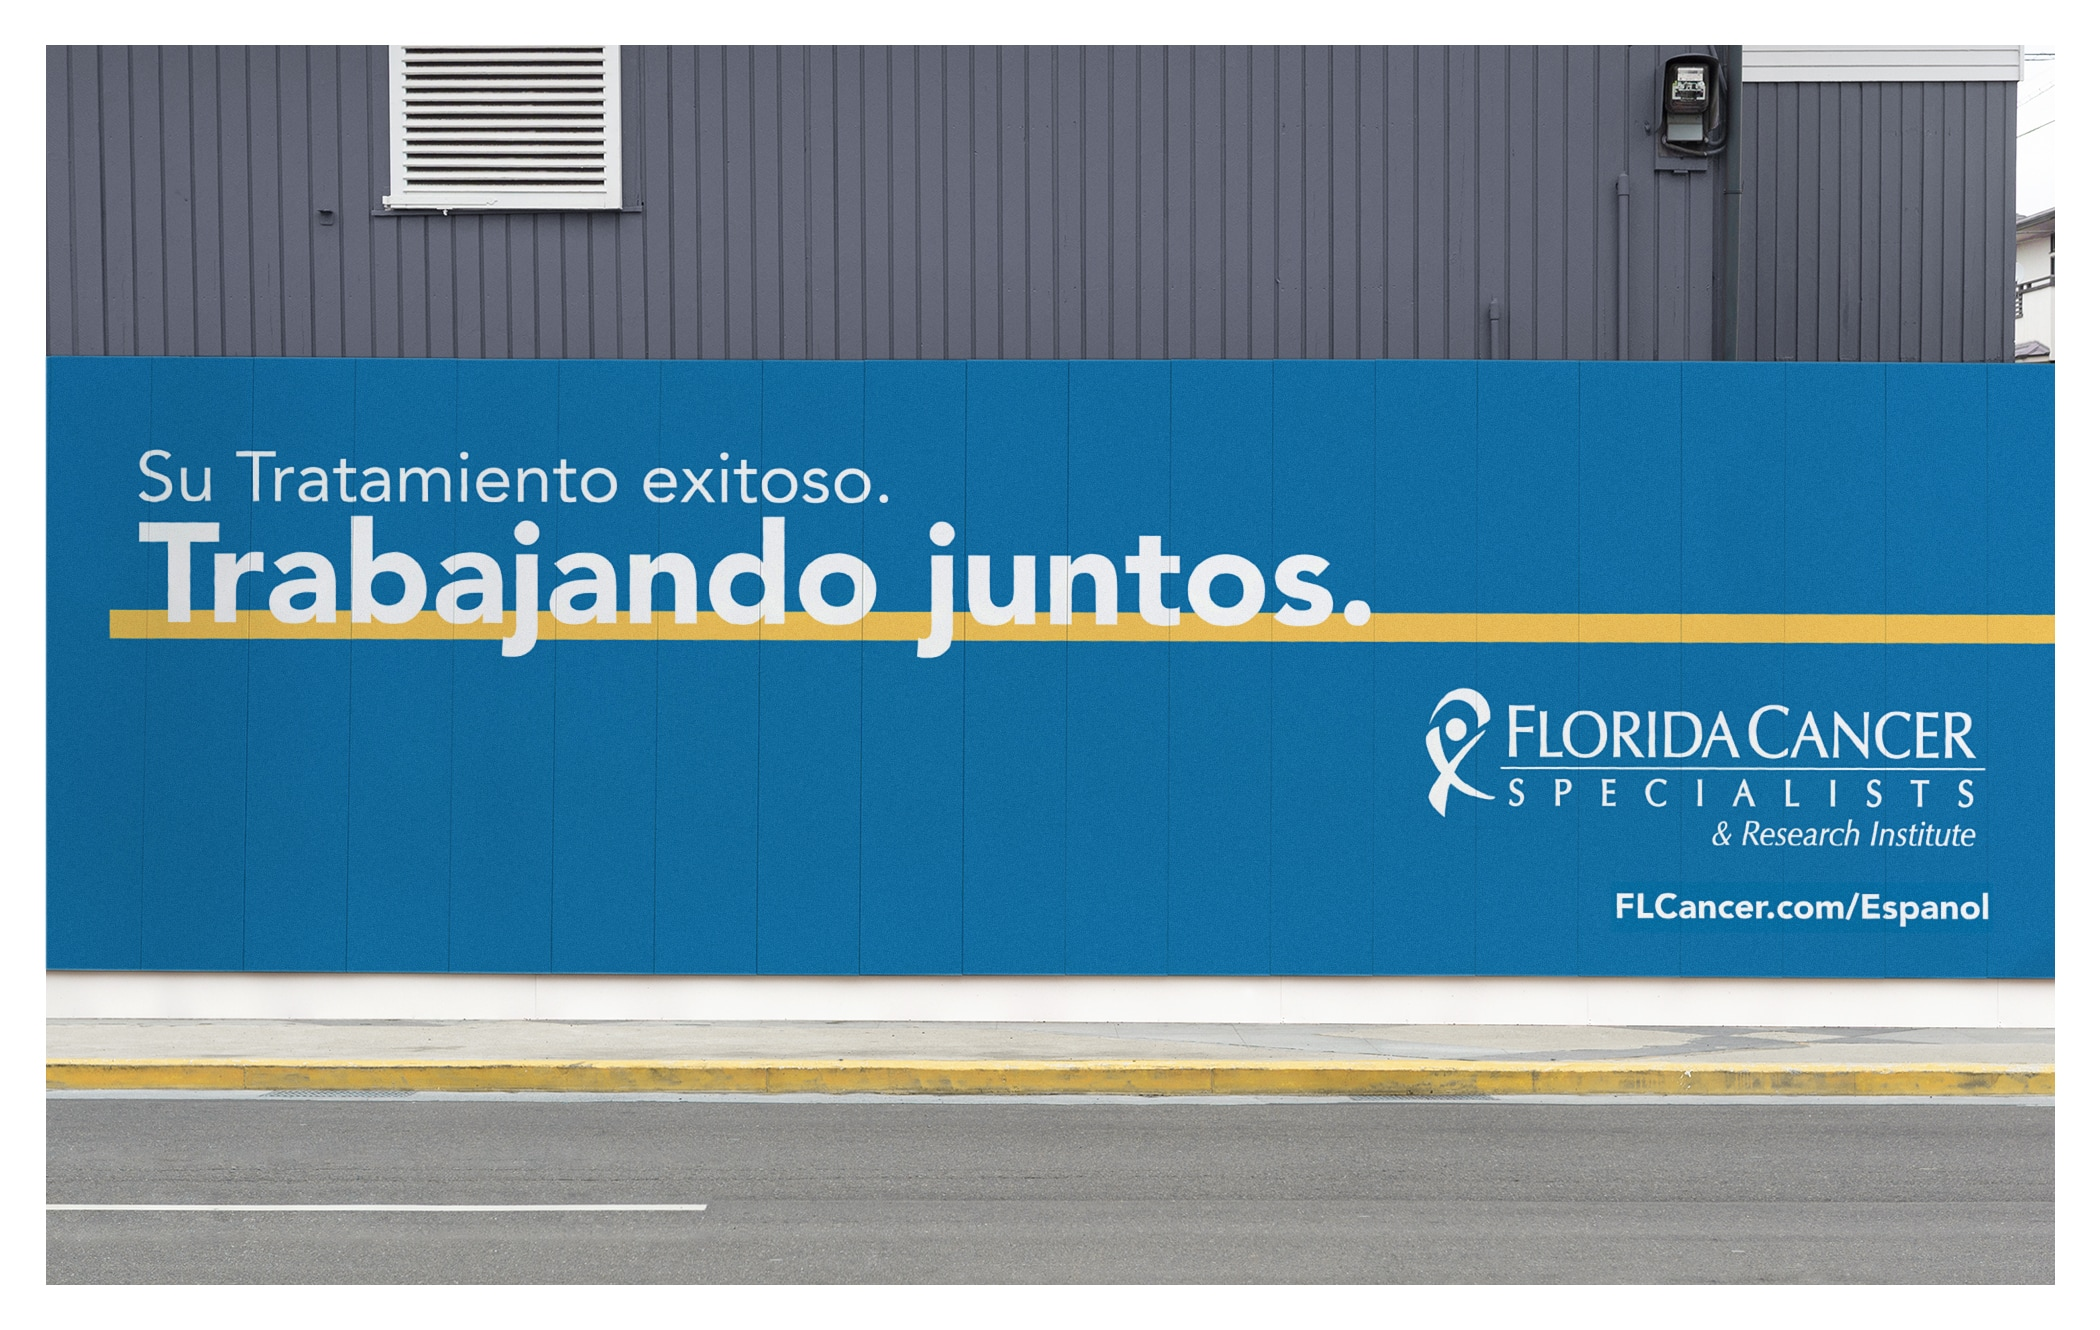 Photo of Every Step of the Way billboard for Florida Cancer Specialists